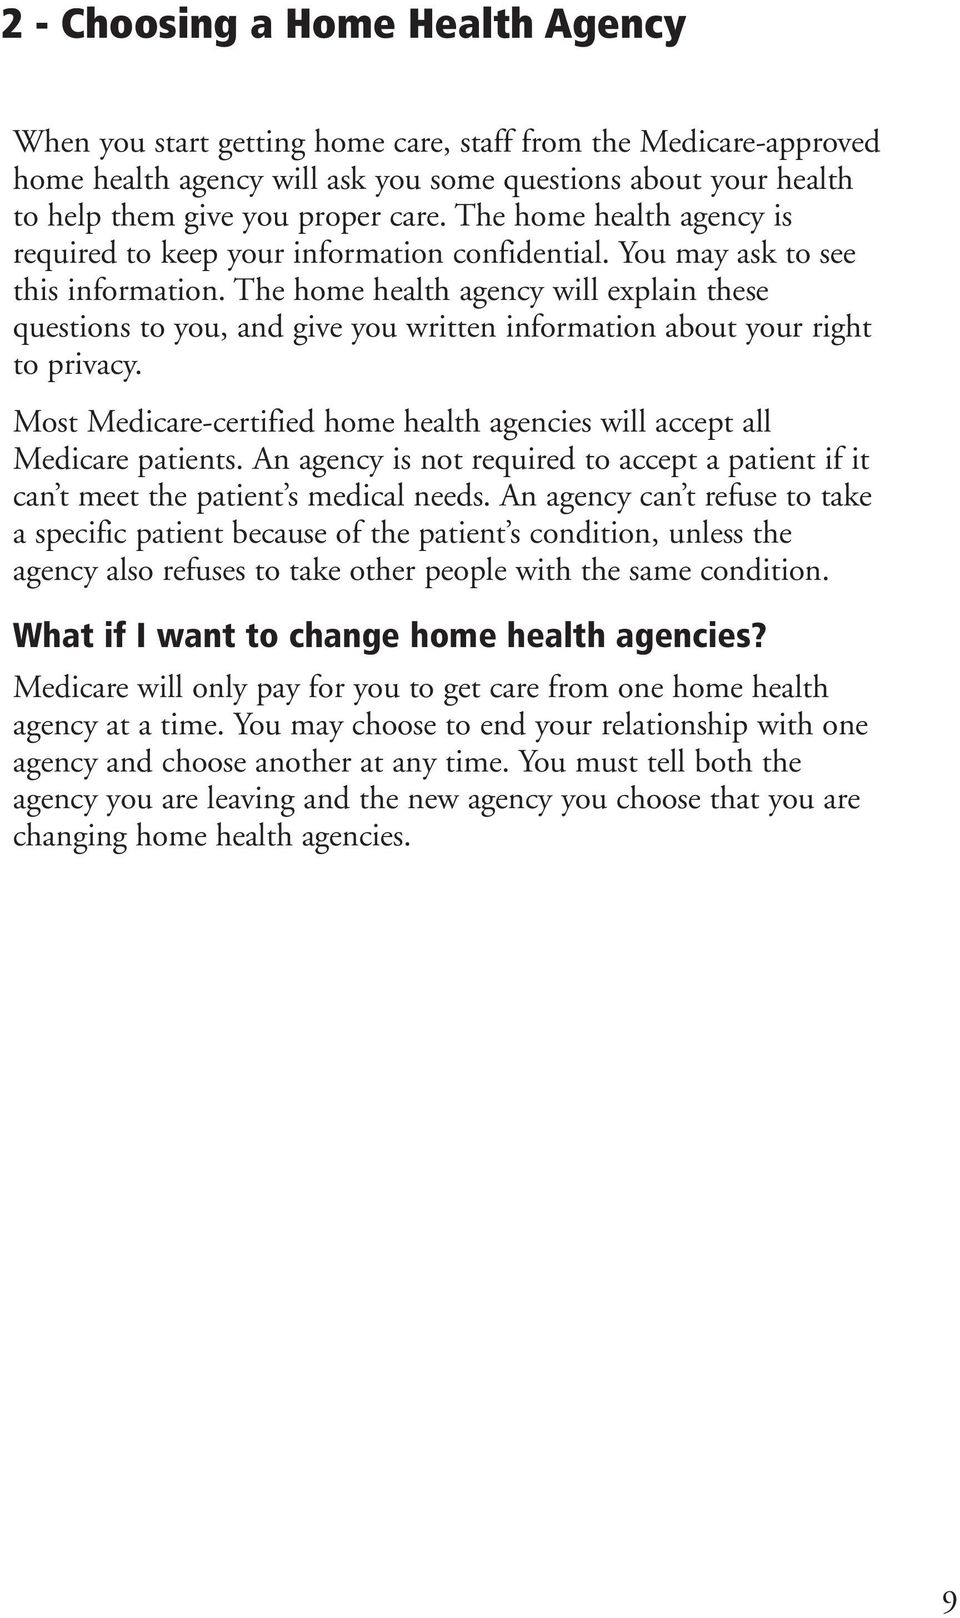 The home health agency will explain these questions to you, and give you written information about your right to privacy.